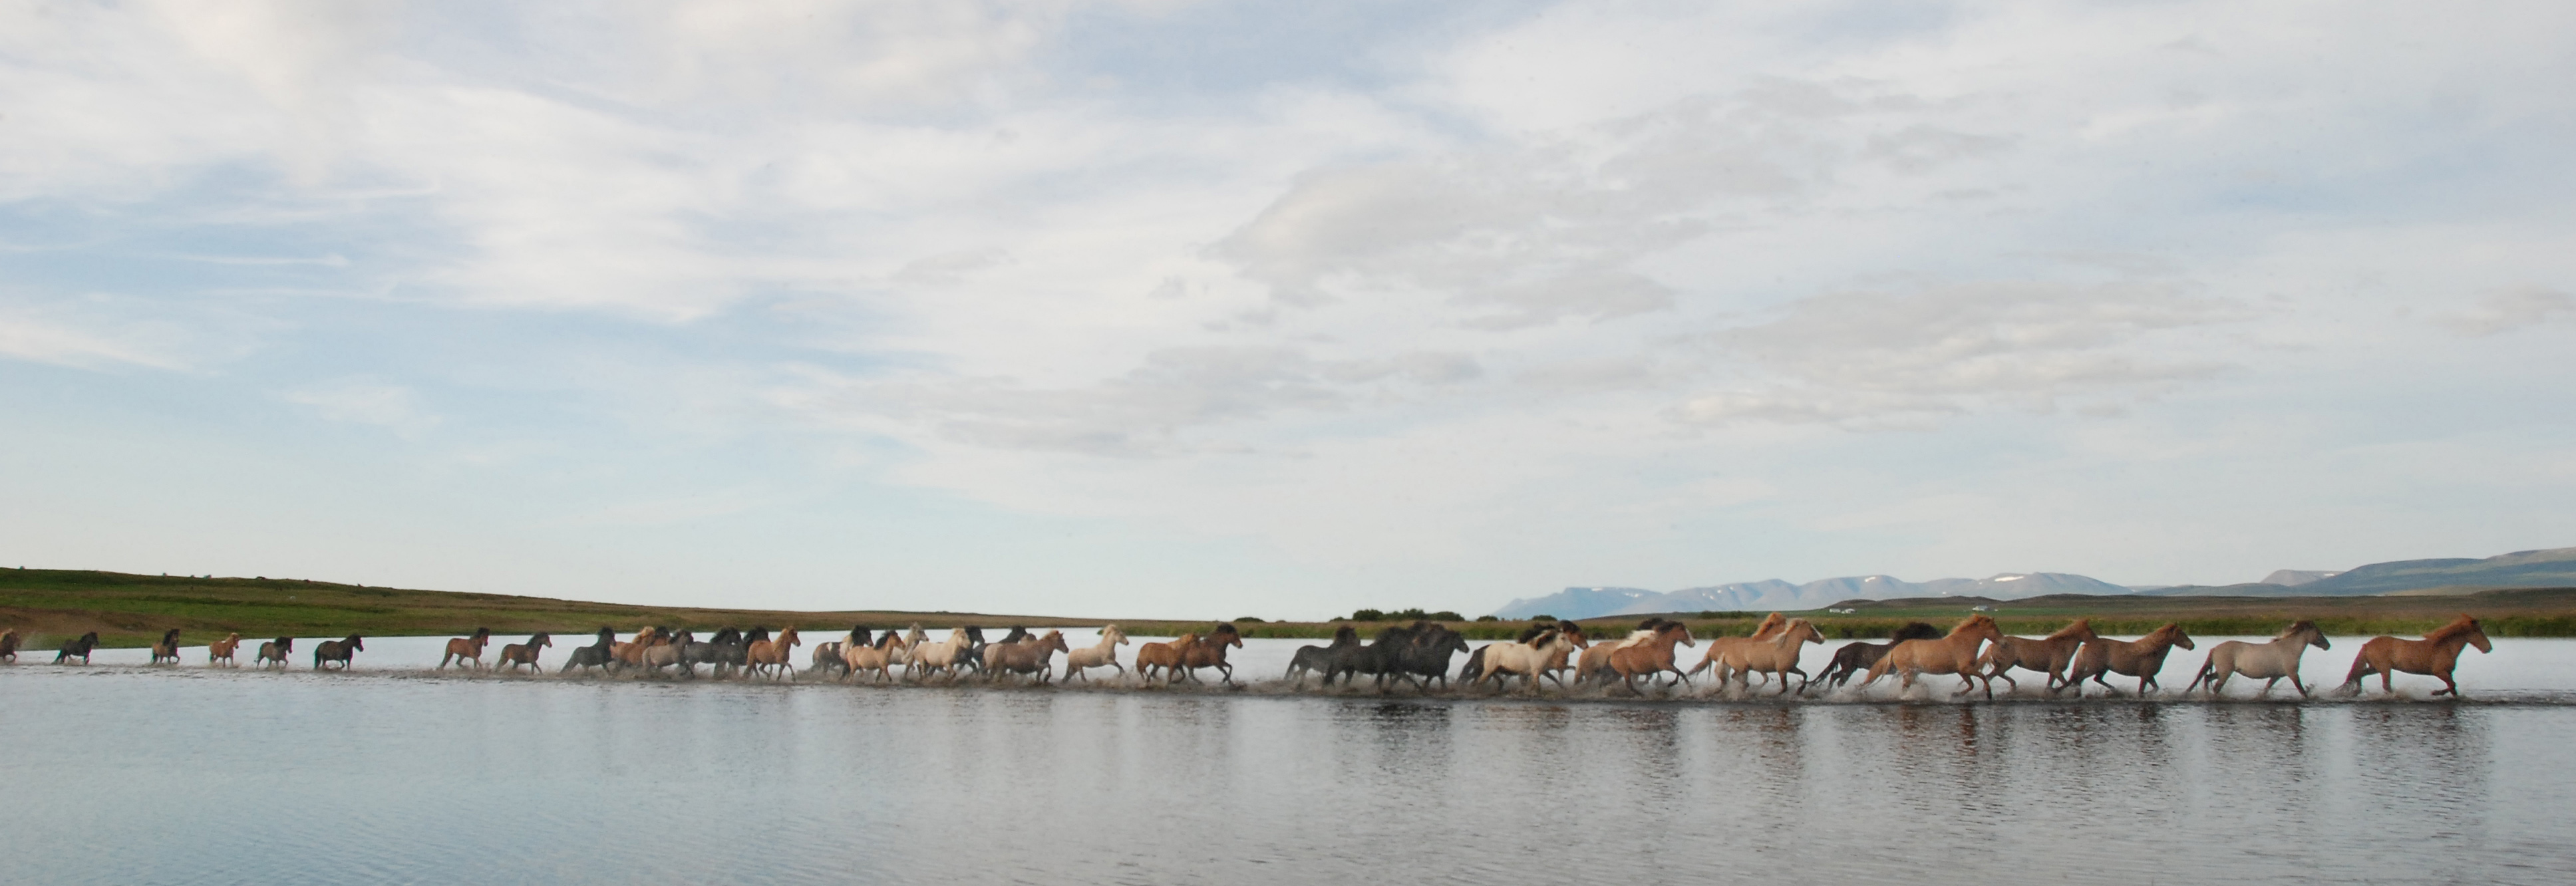 Herd Running through Water-Iceland